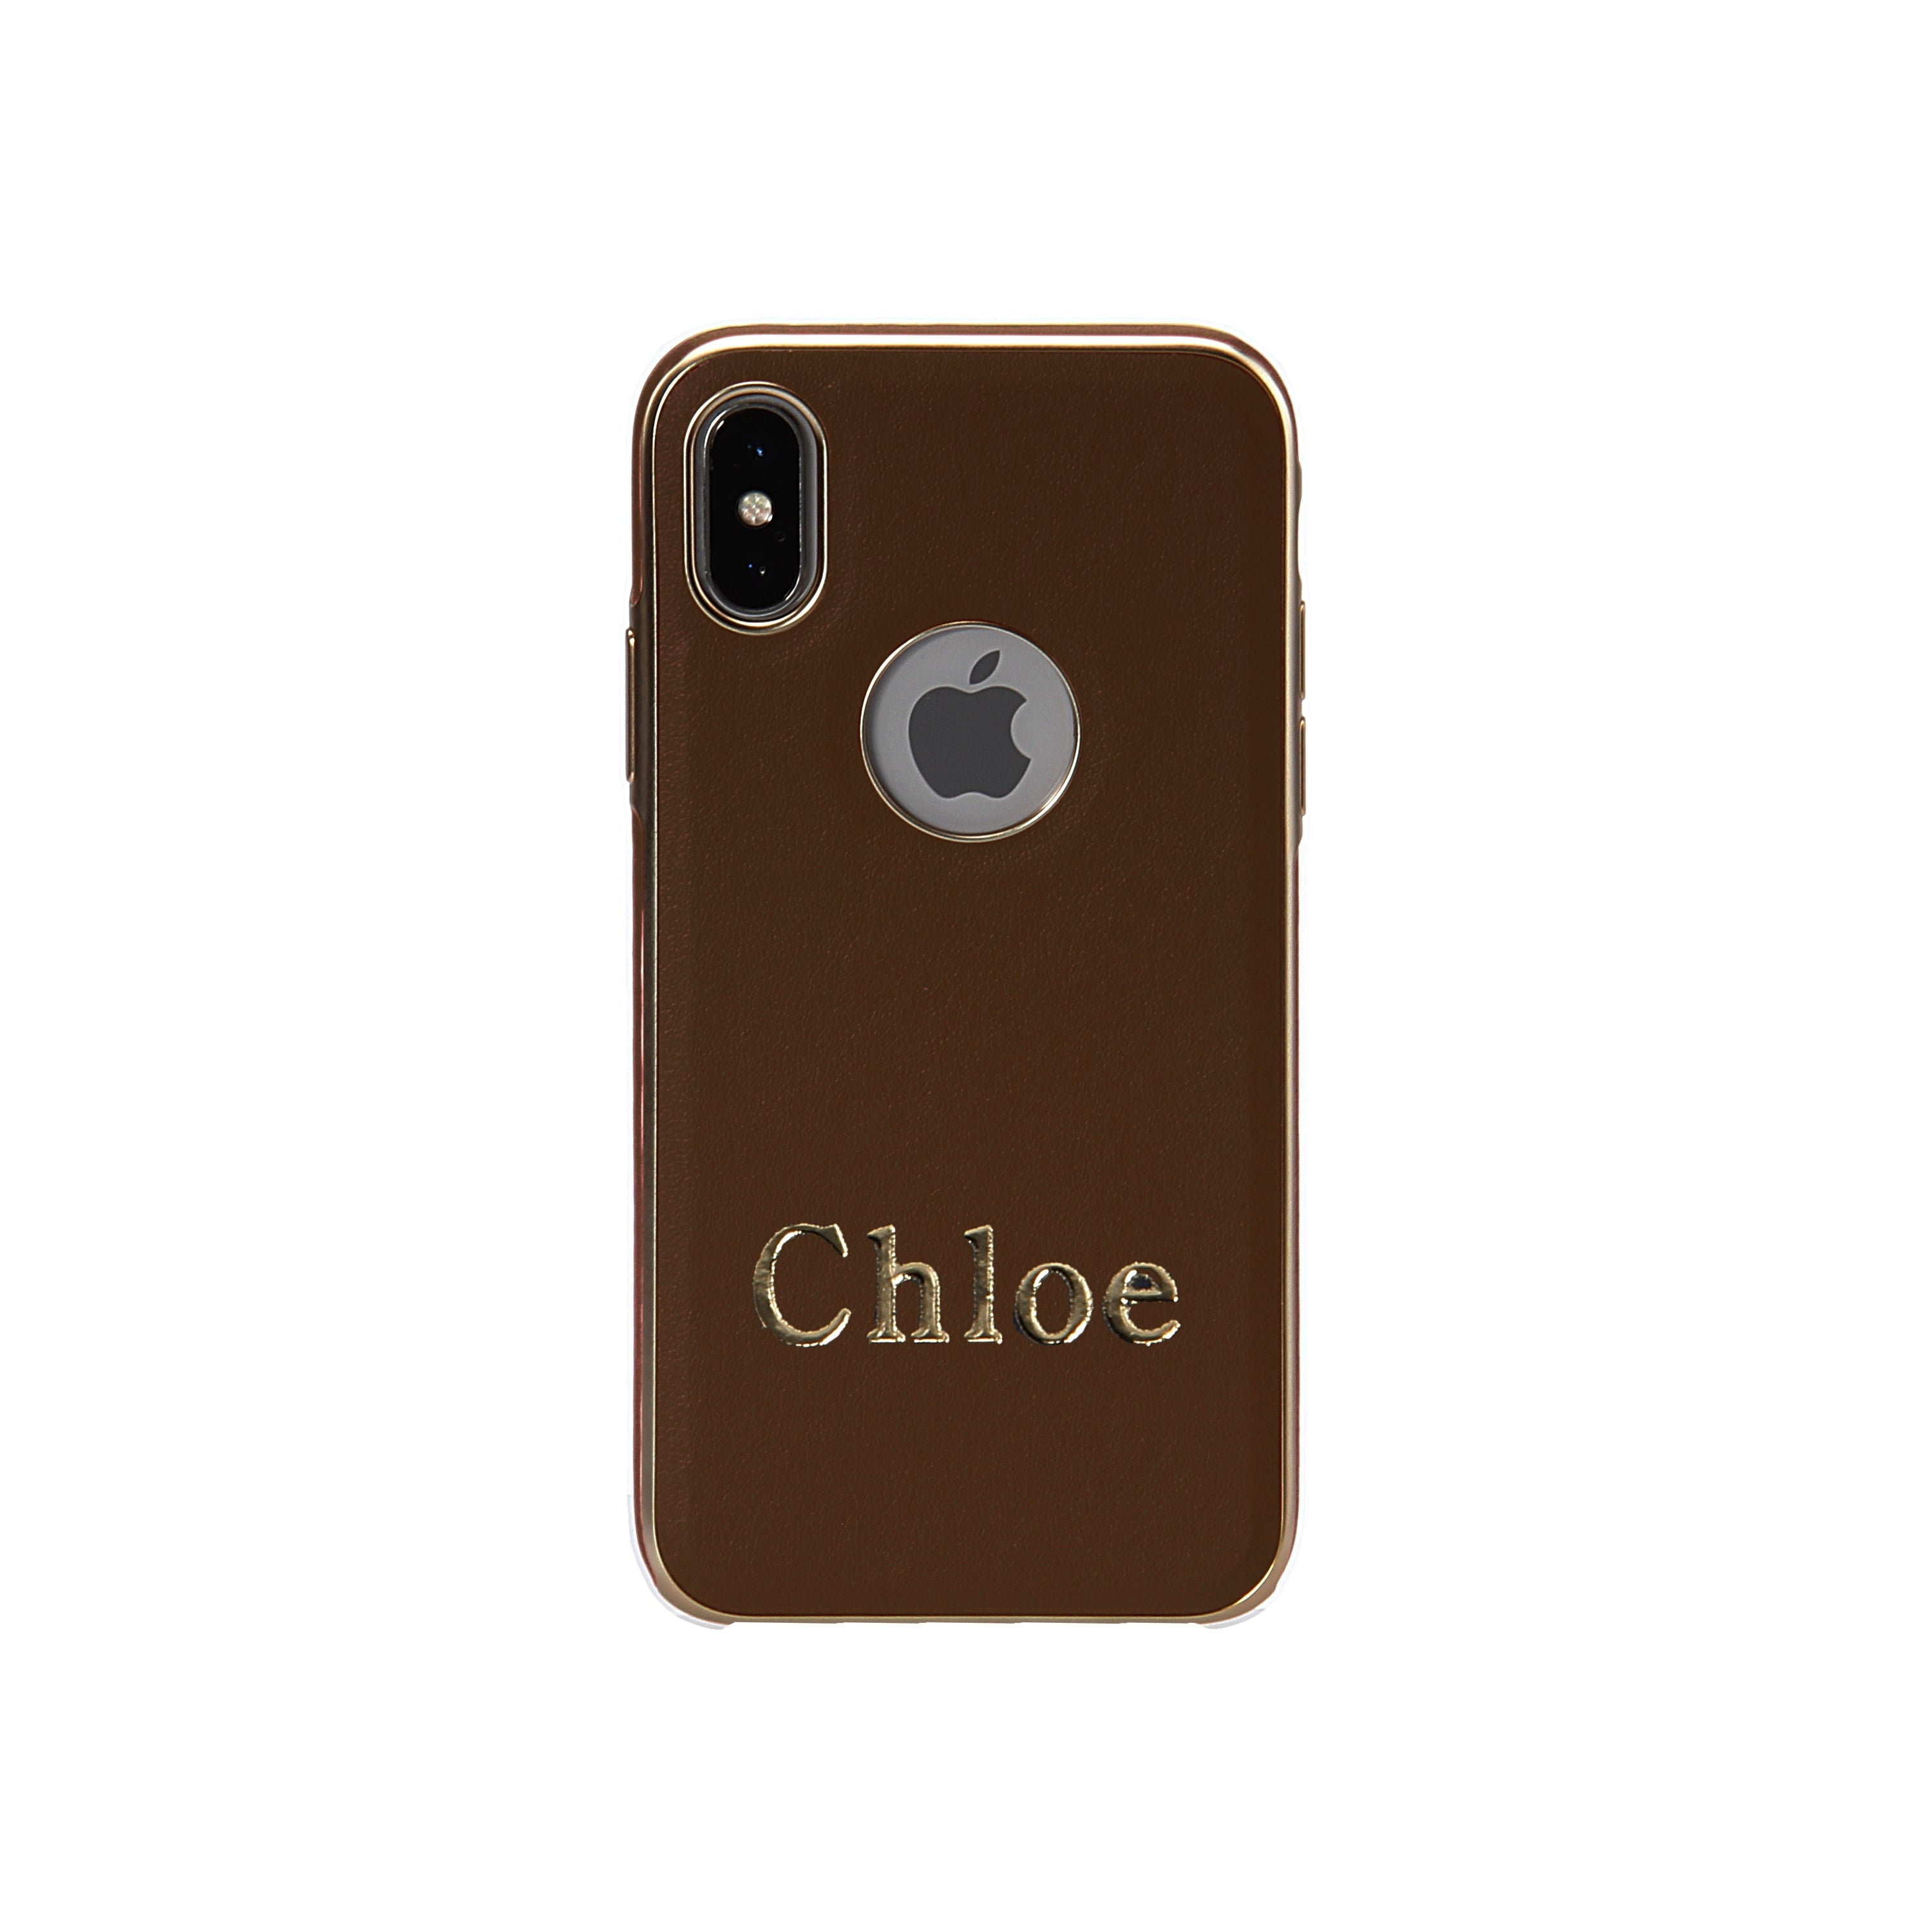 Iphone 7 8 Rc Gold Rim Leather Monogrammed Engraving And Stamping Goospery Sky Slide Bumper Case Caseoftheday